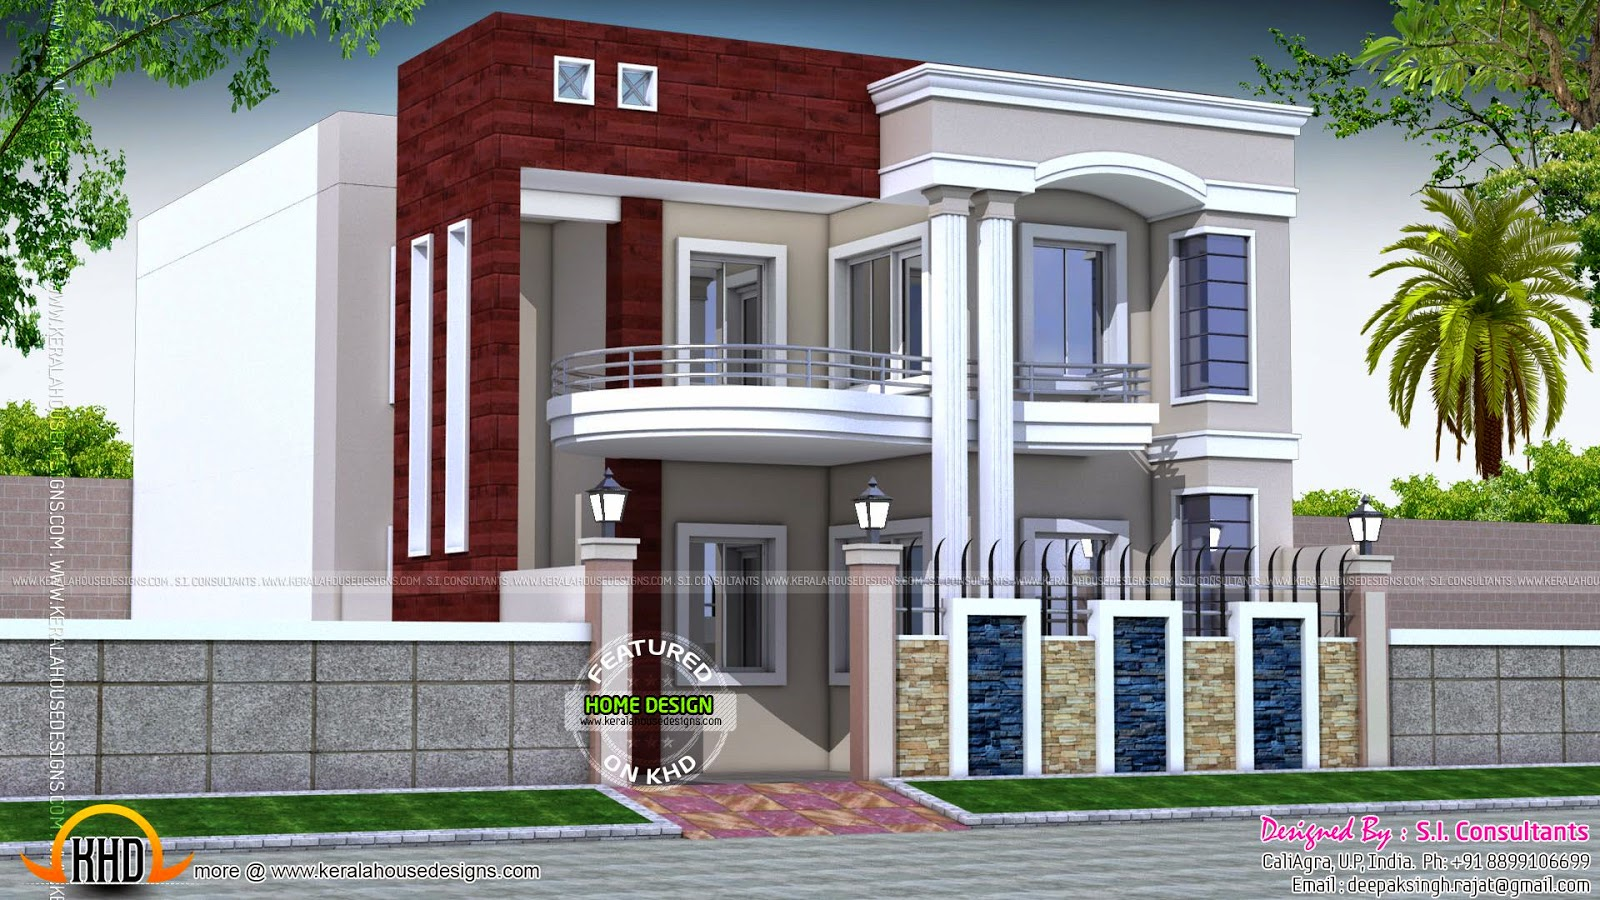 House design in north india kerala home design and floor for House plan in india free design